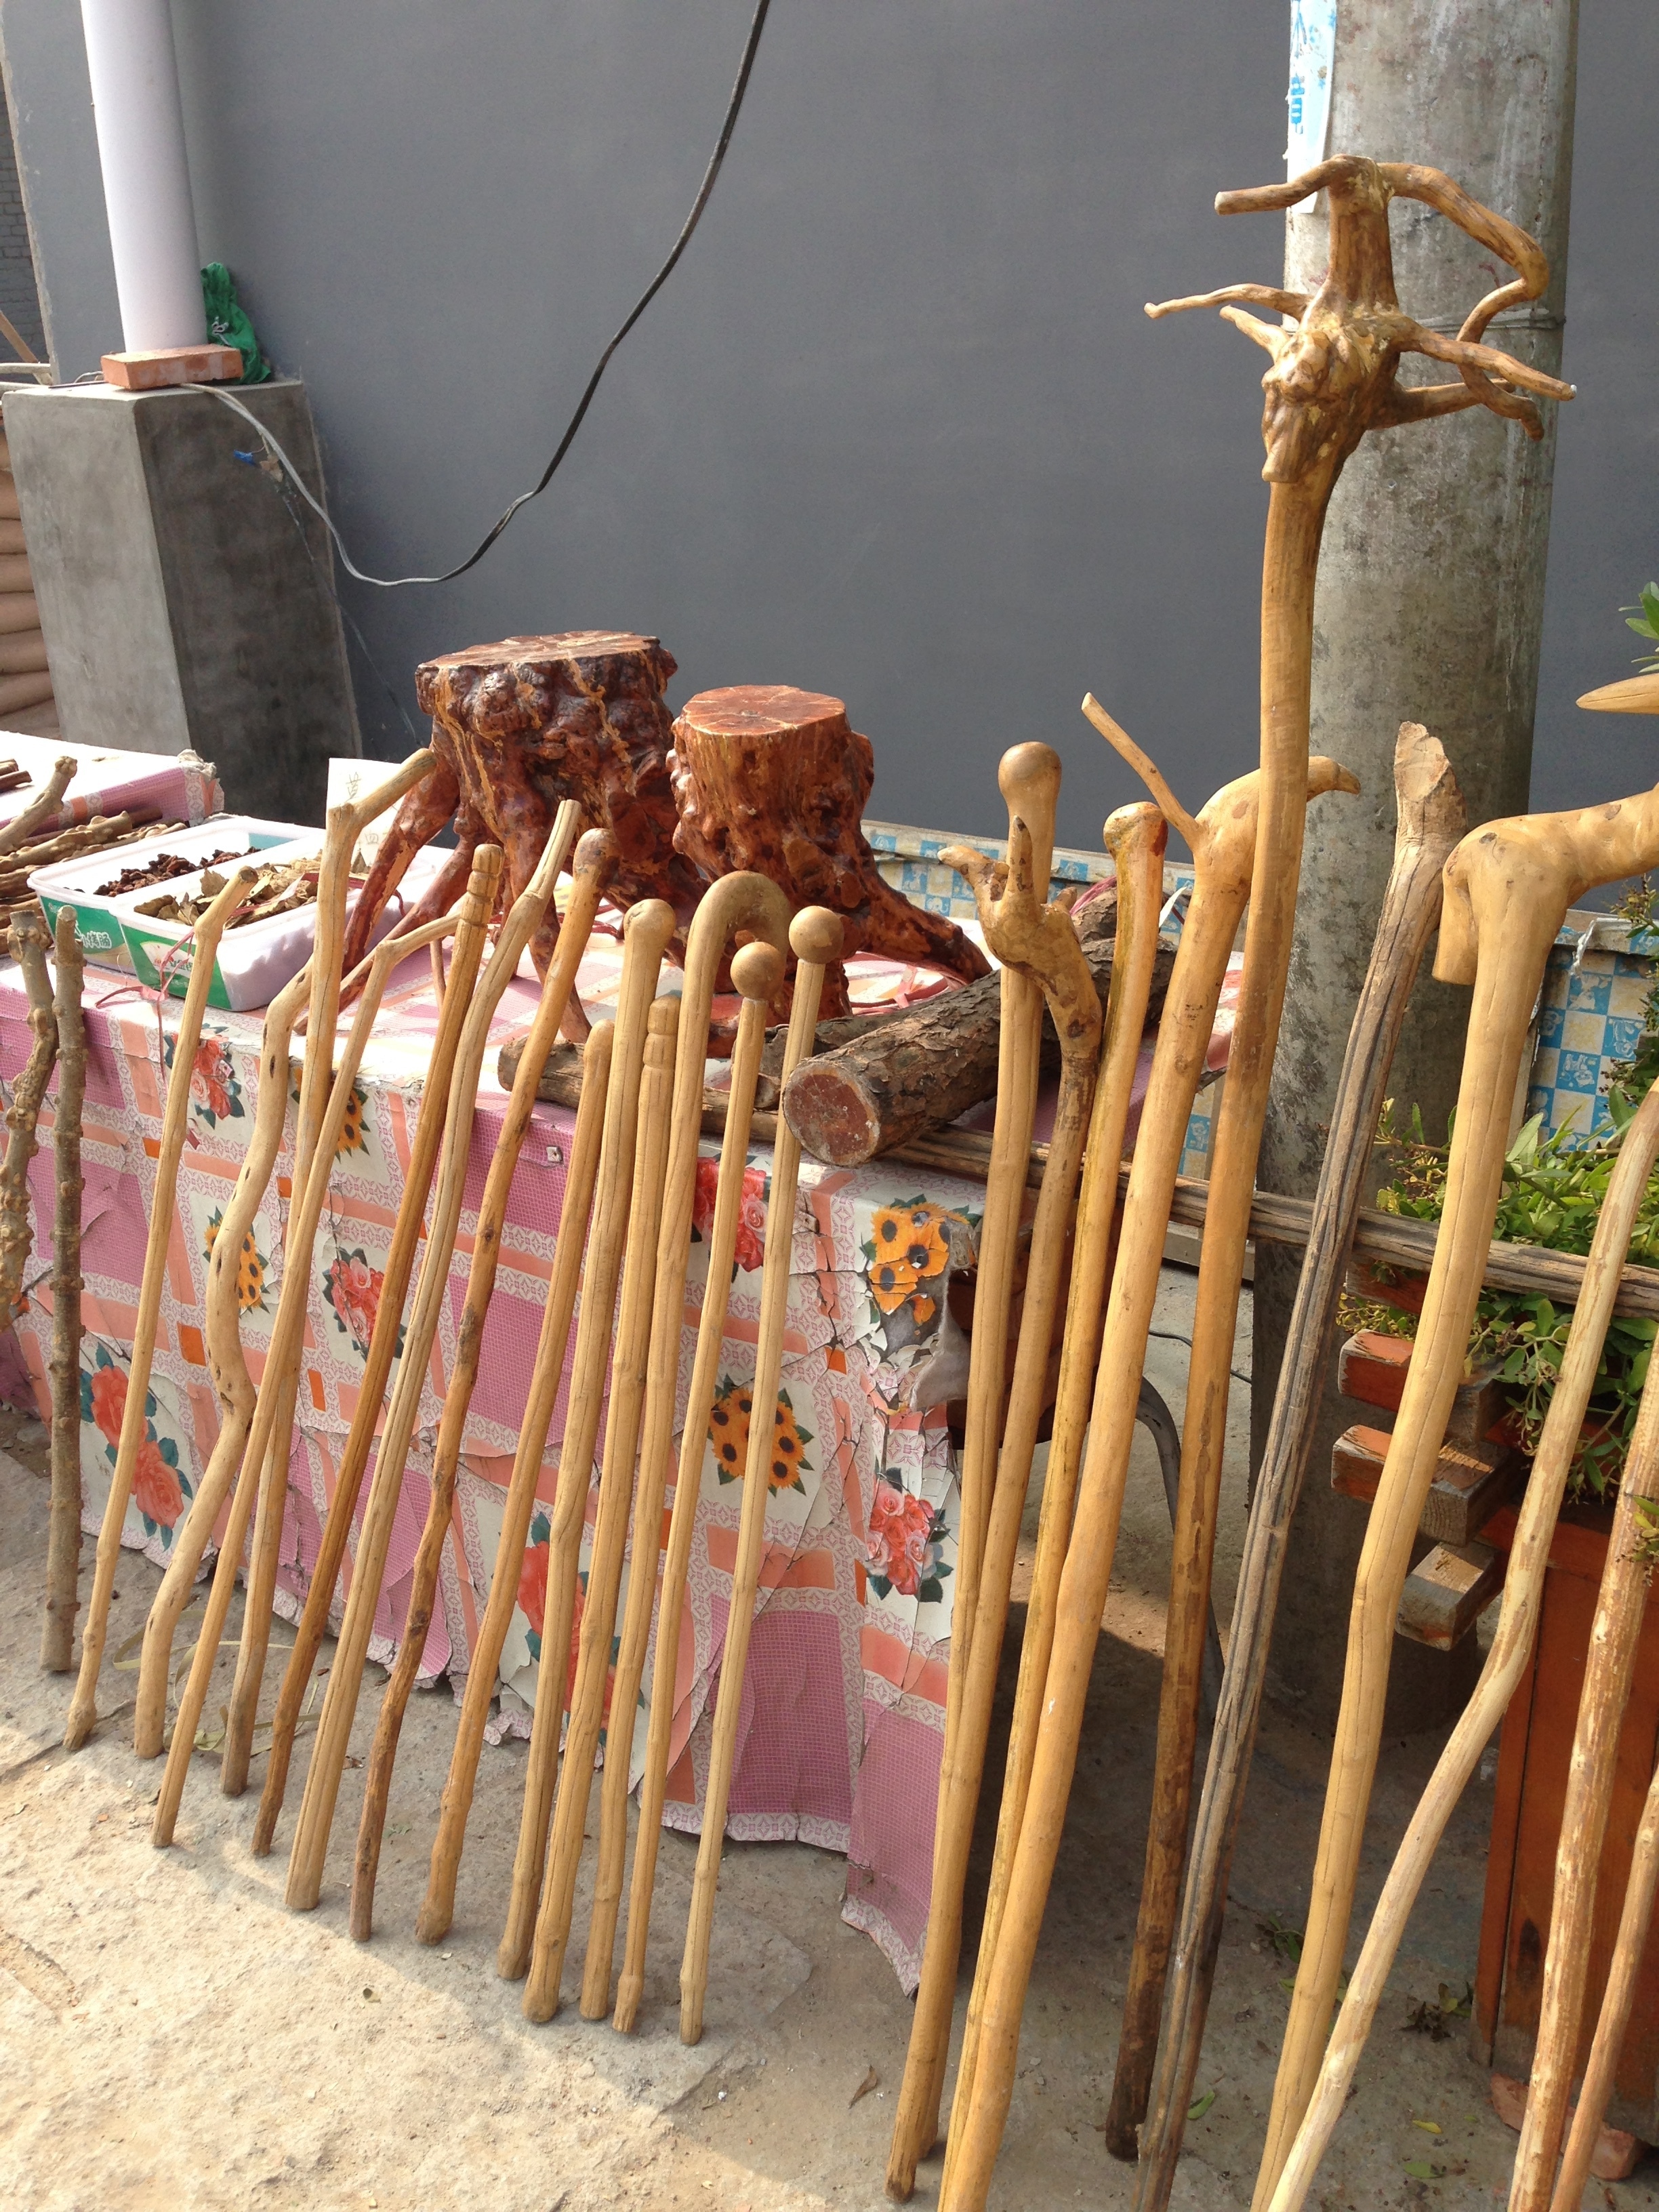 Walking sticks for sale.